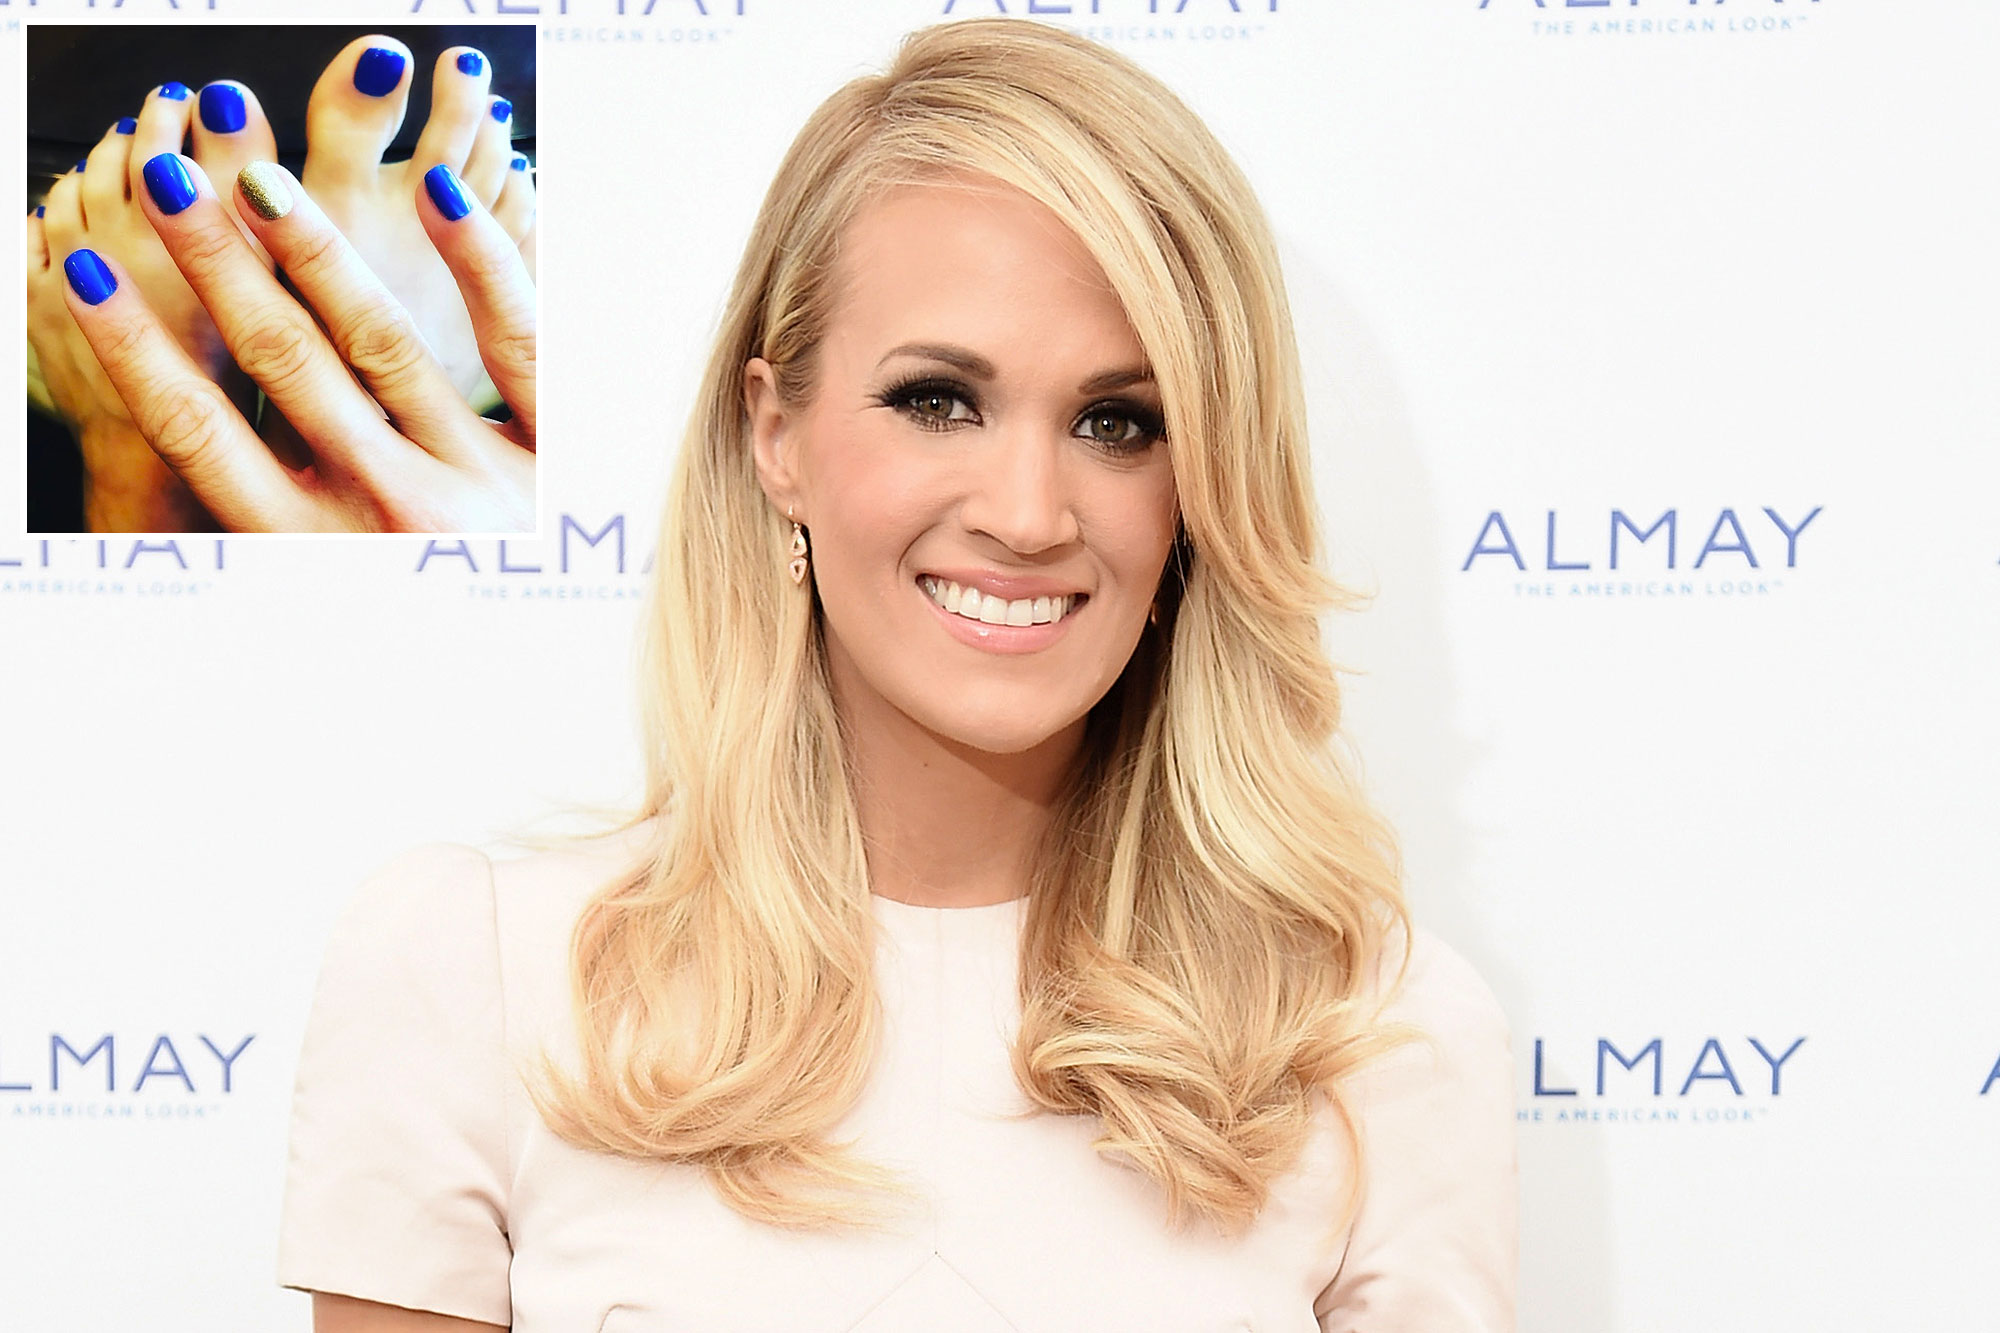 Carrie Underwood Nail Art